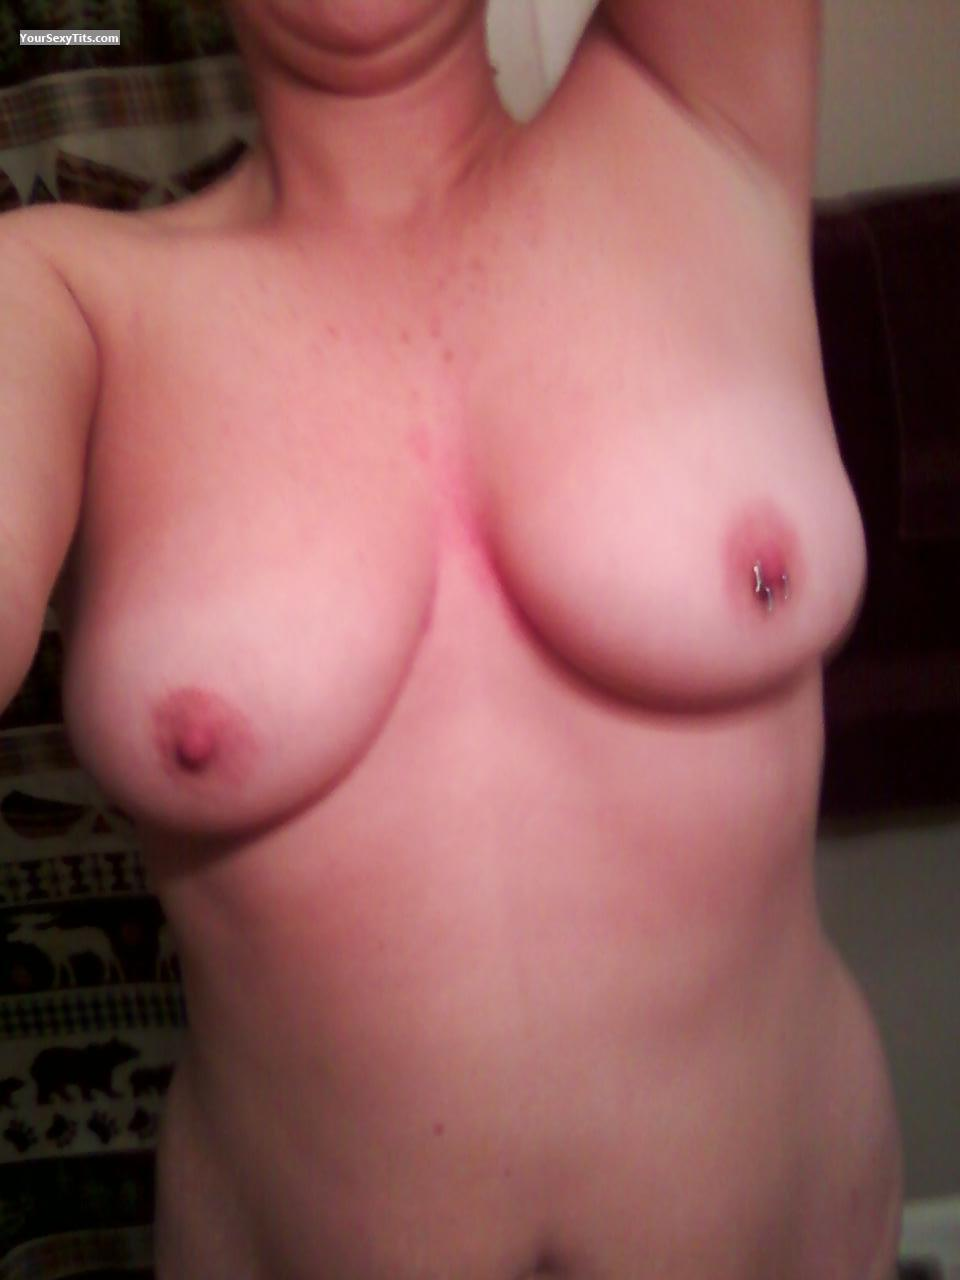 Tit Flash: My Medium Tits (Selfie) - Najios Wife from United StatesPierced Nipples